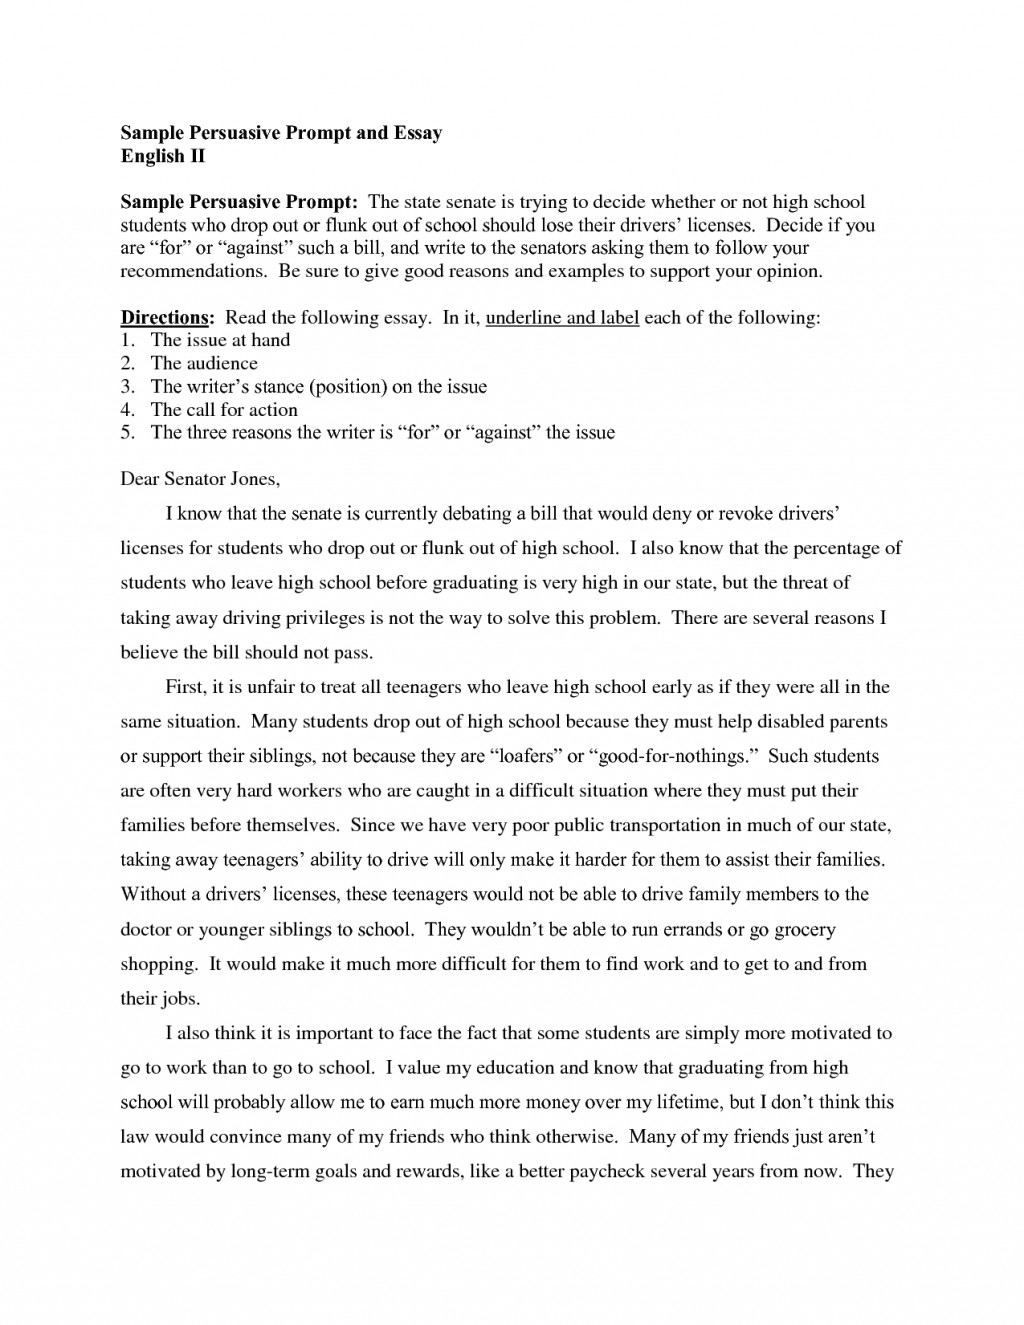 013 Research Paper Easy Topic Persuasive Essay Topics For High School Sample Ideas Highschool Students Good Prompt Funny Fun List Of Seniors Writing English Sensational Psychology History Large